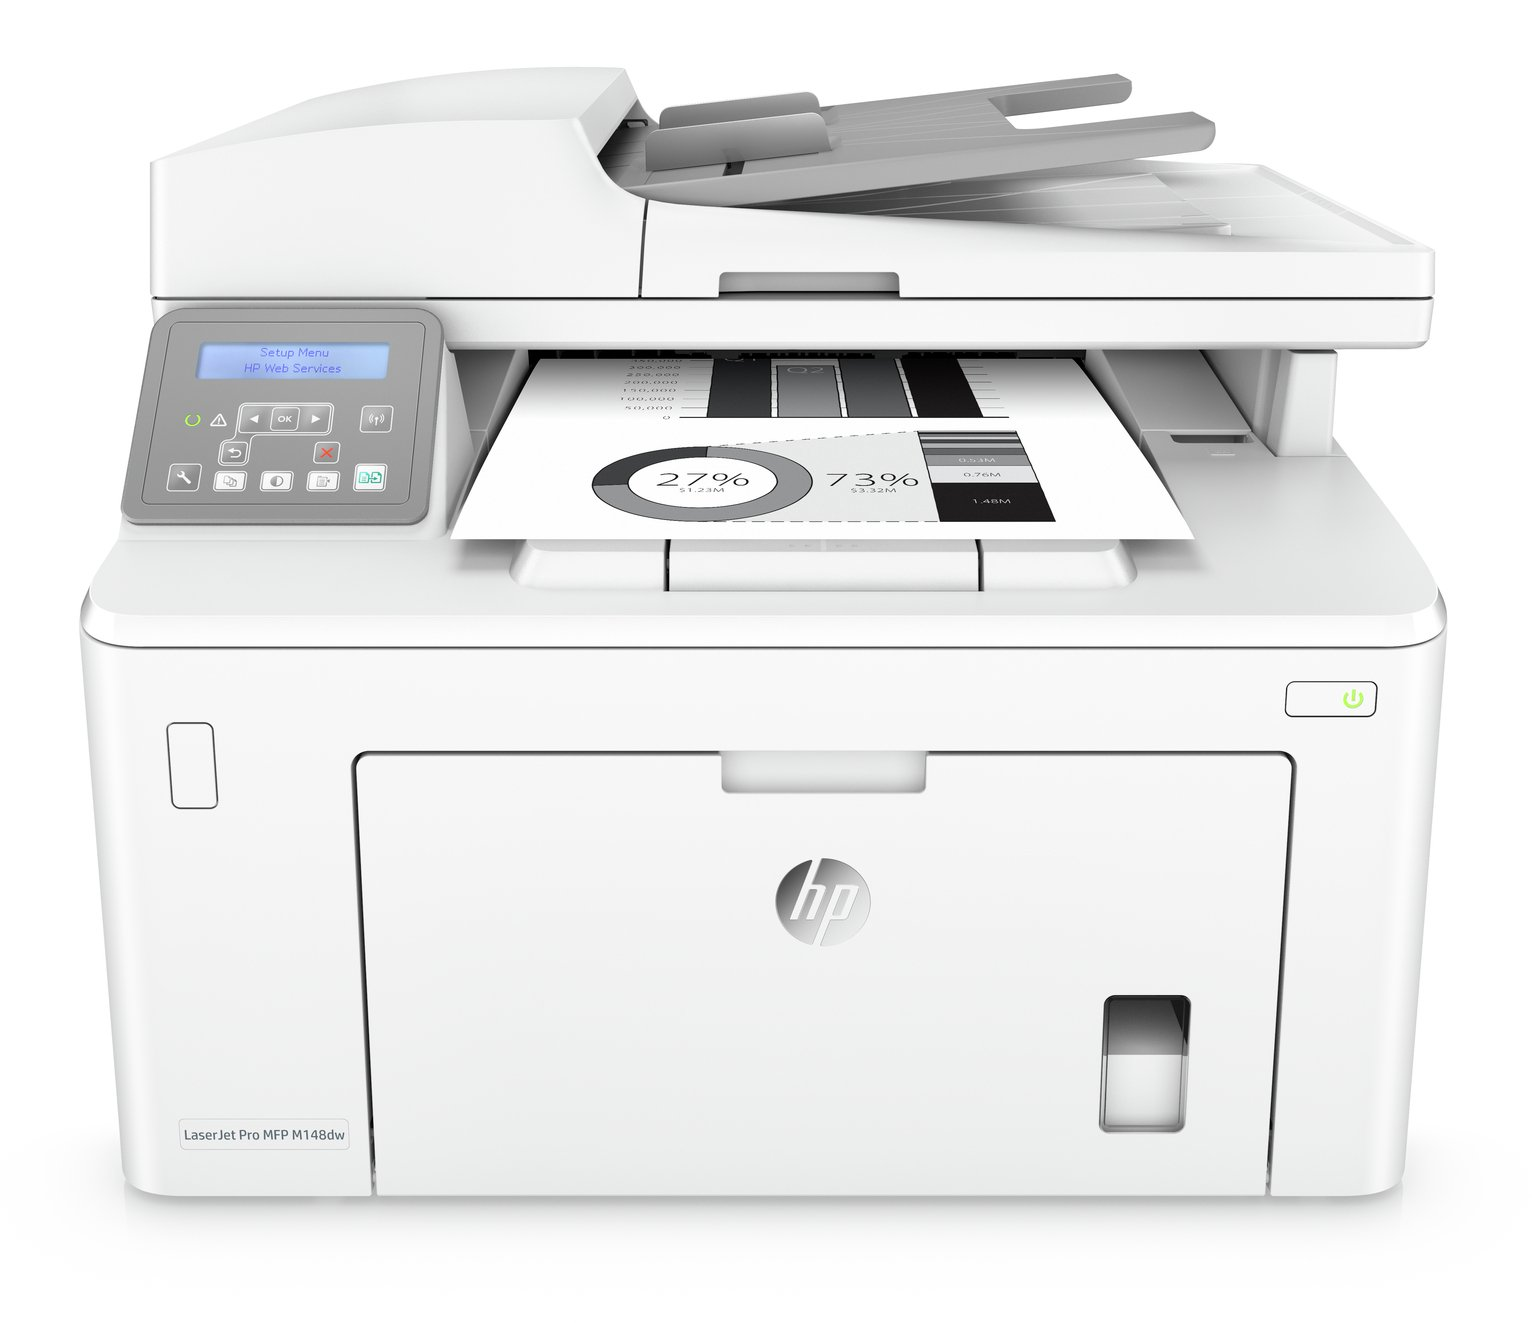 HP LaserJet Pro MFP M148DW Wireless Mono Laser Printer